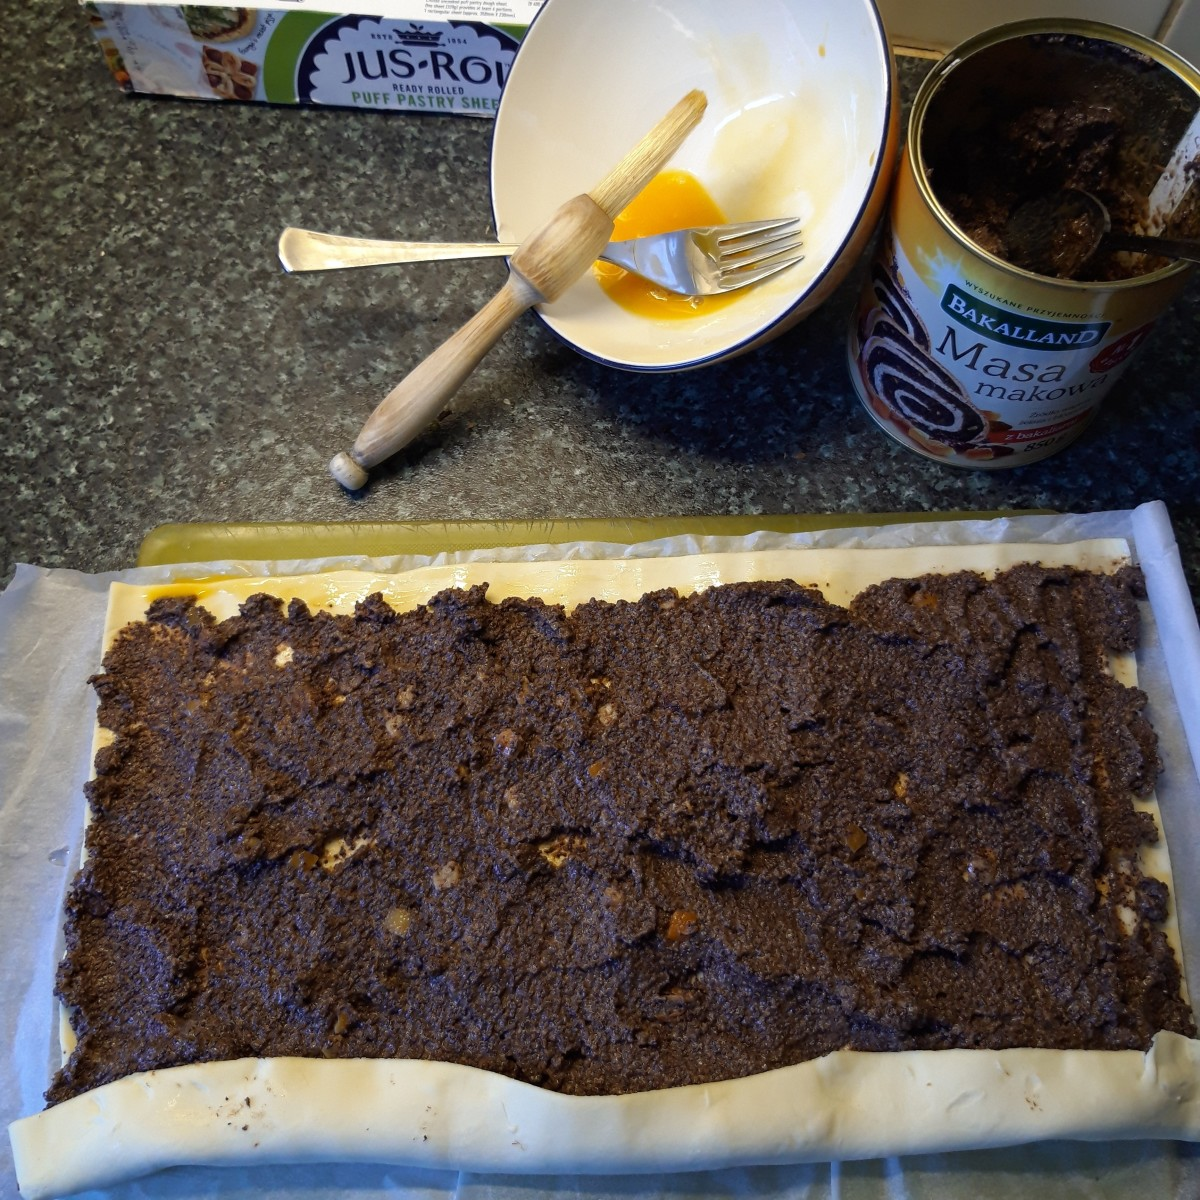 Spread poppy seed paste evenly over pastry